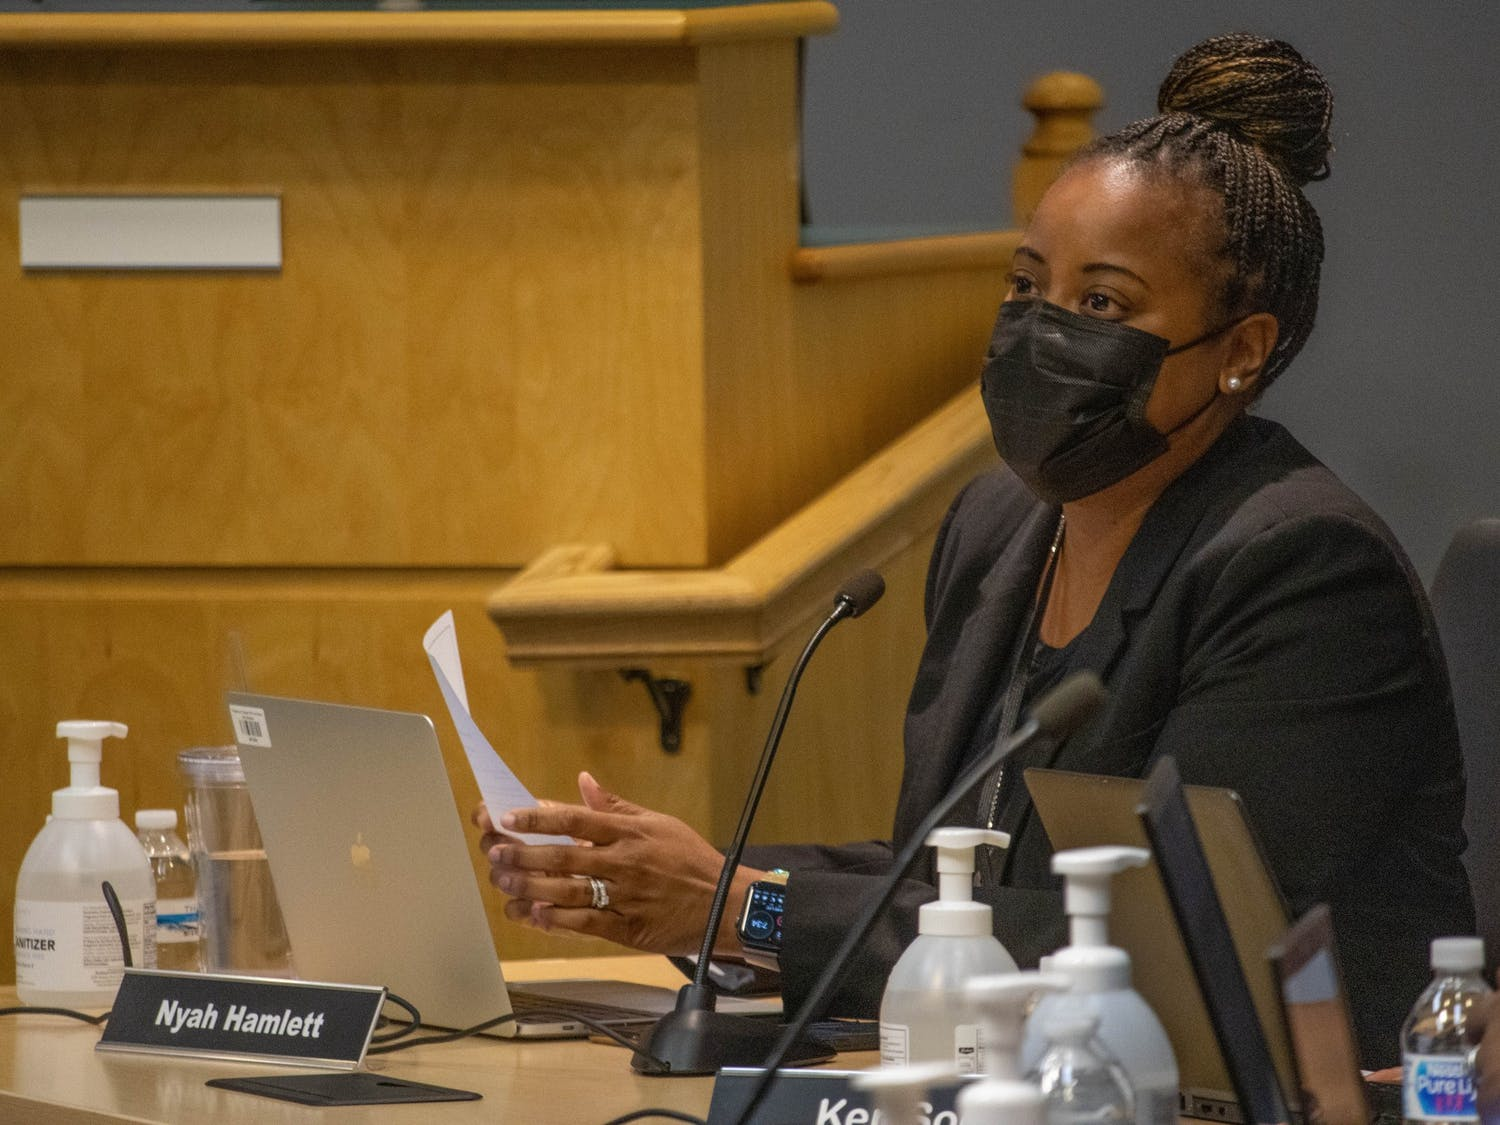 Nyah Hamlett, Ed.D., superintendent of Chapel Hill-Carrboro City Schools, pictured at the Board of Education's August 12 meeting.